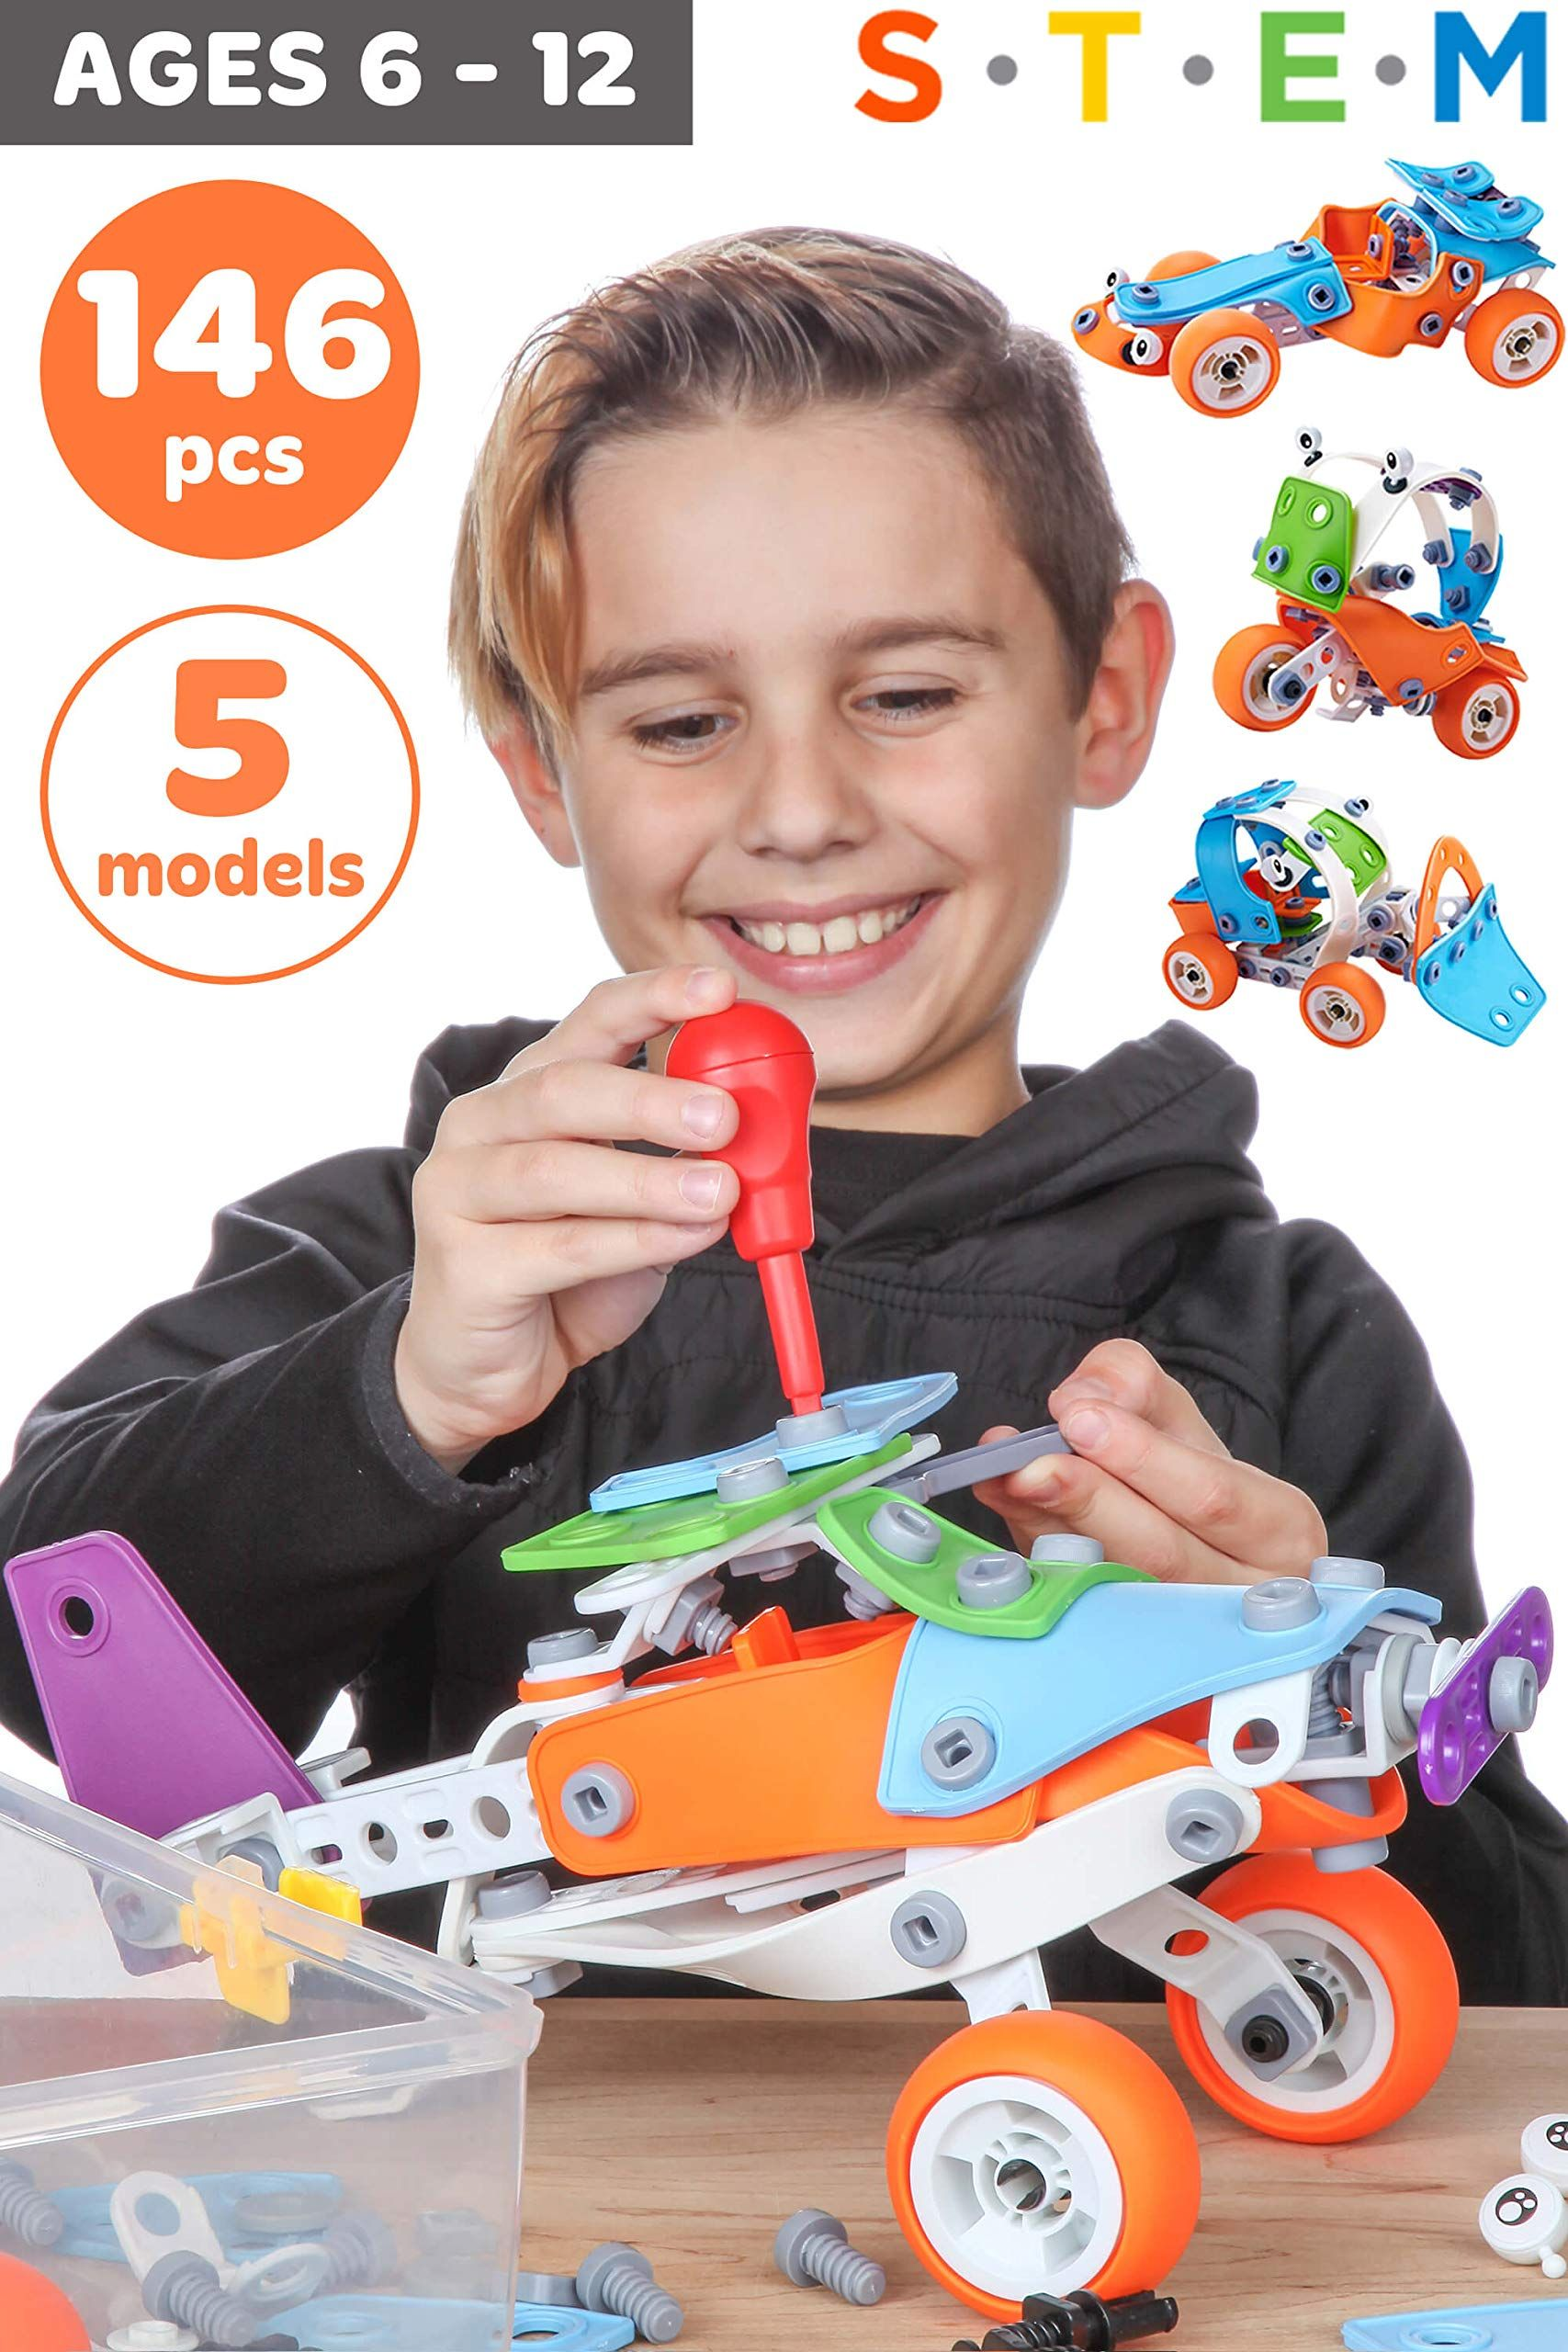 Toy Pal Stem Toys For 7 Year Olds Boys Educational Kids Building Toys For Boys Toys Age 6 7 8 Kids Building Toys Educational Toys For Kids Boys Toys Age 6